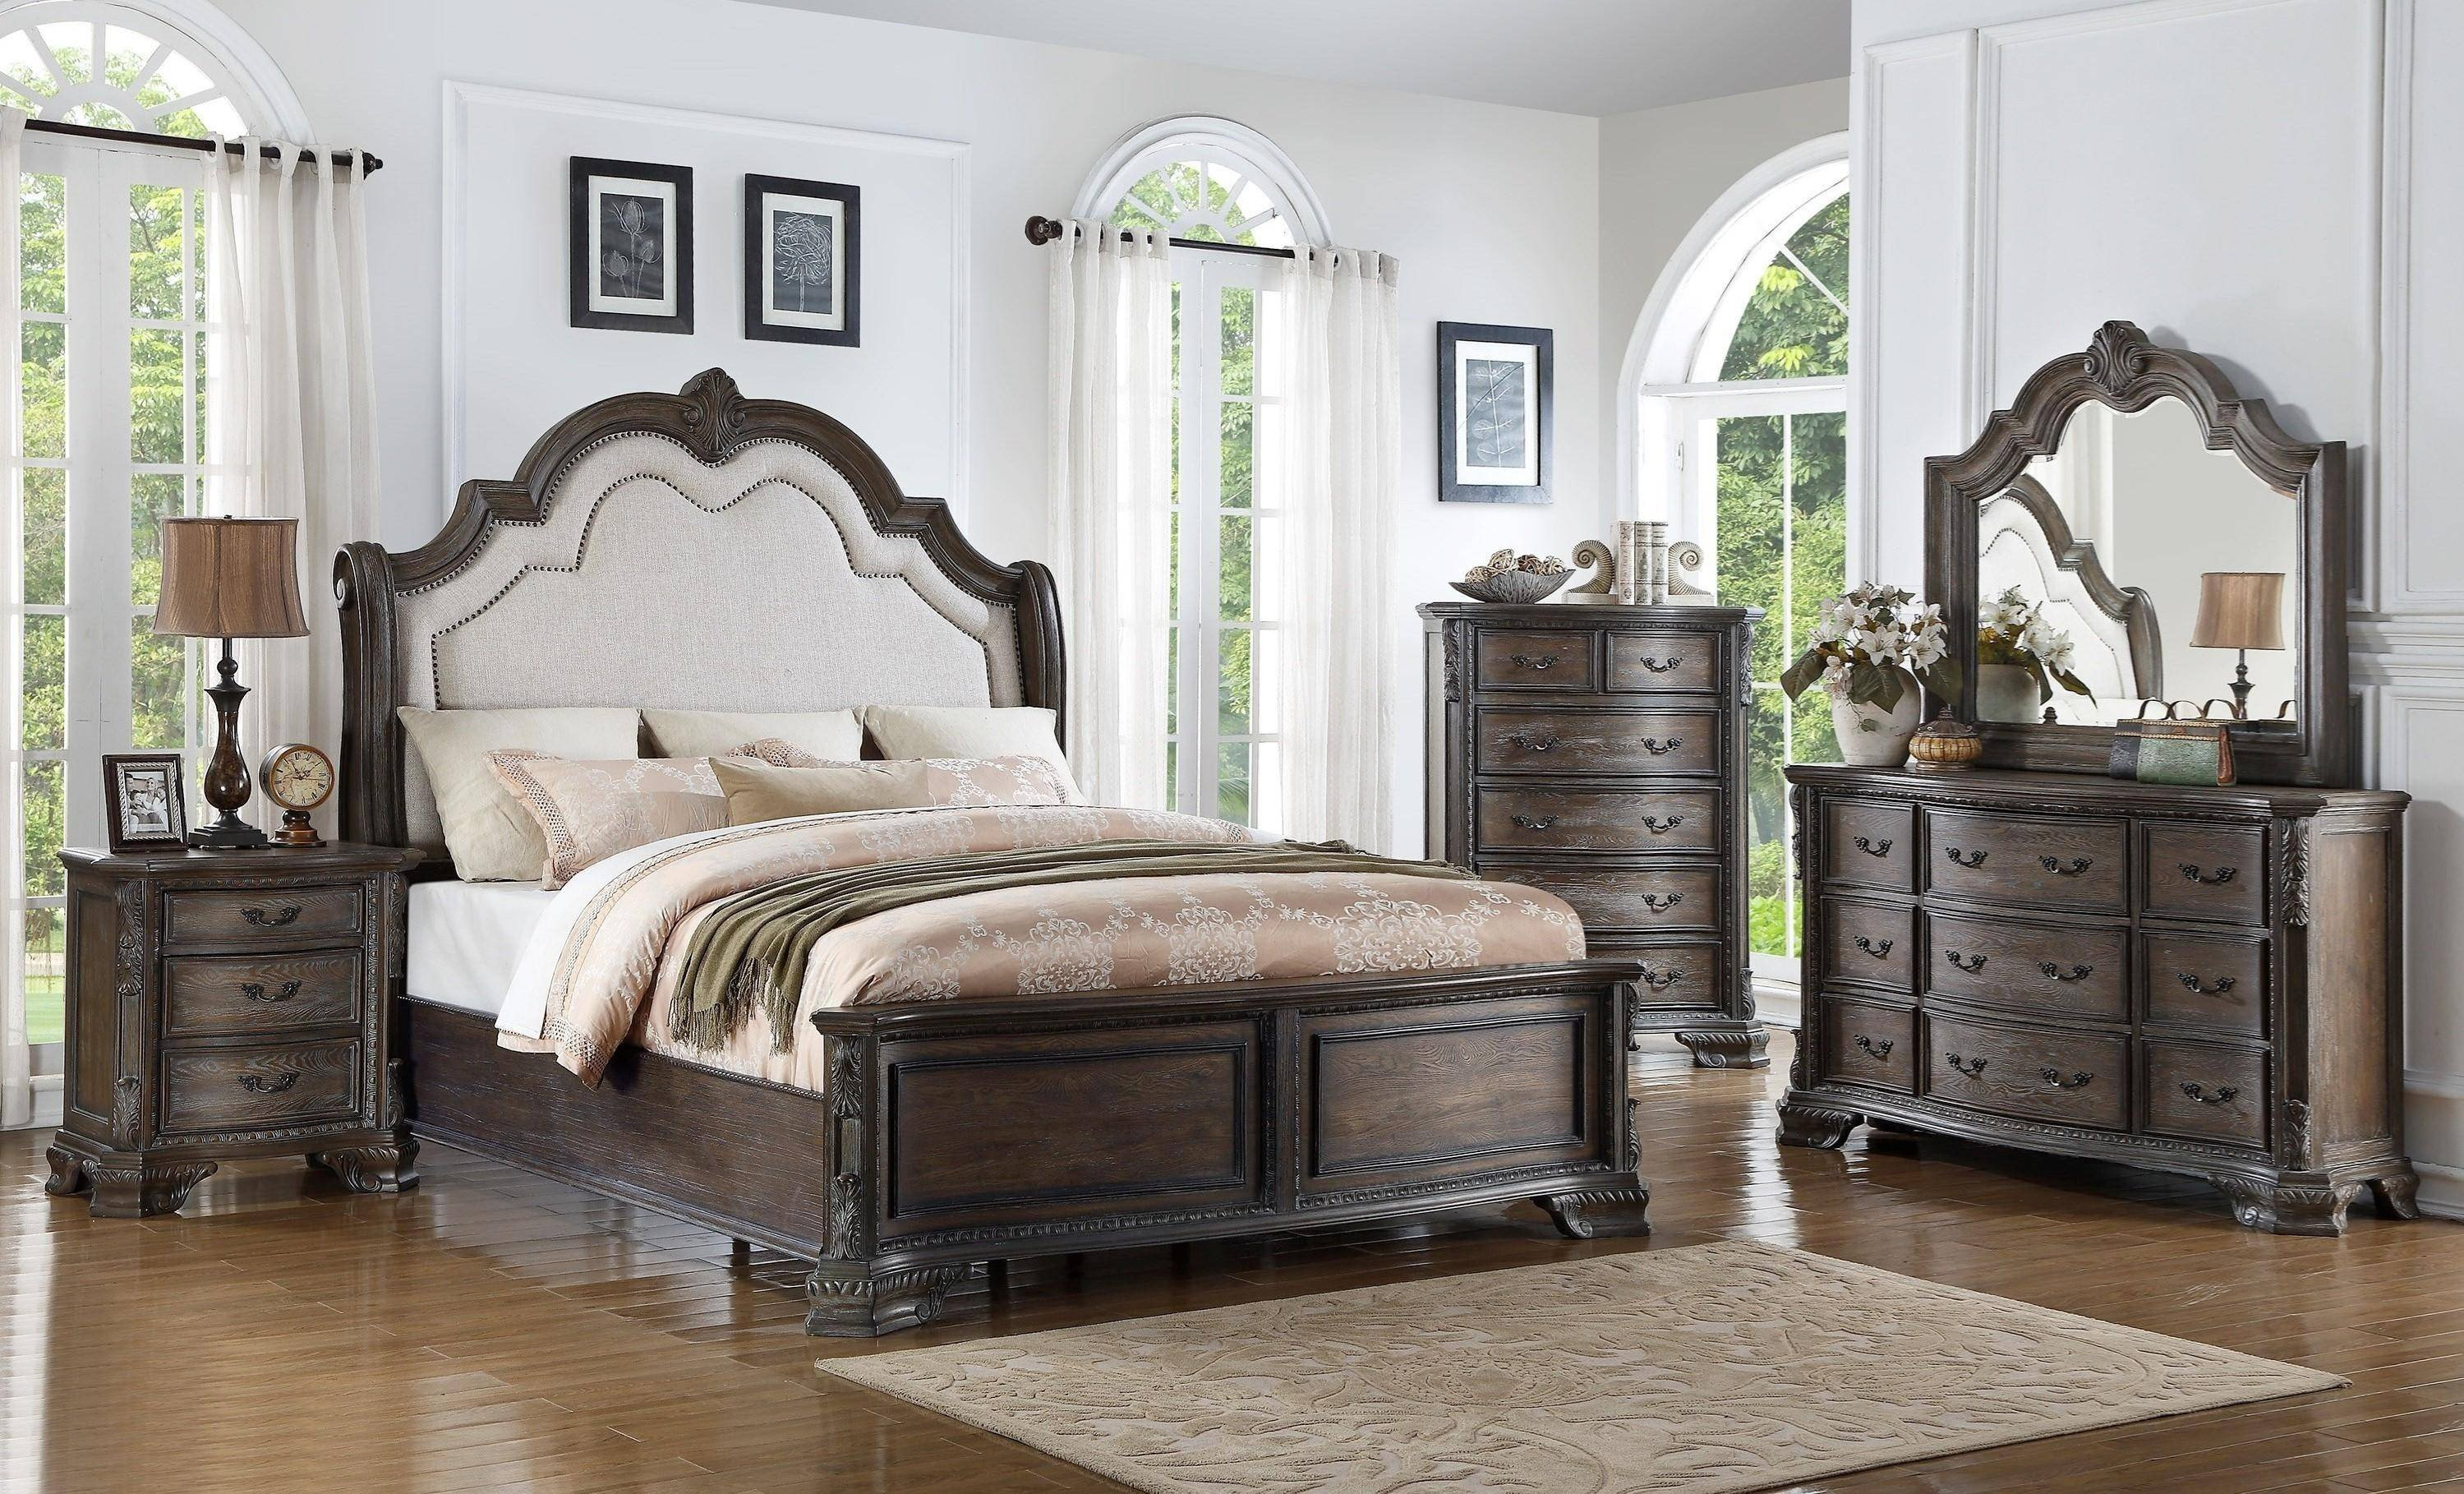 Gray King Bedroom Set Luxury Crown Mark B1120 Sheffield Queen Panel Bed In Gray Fabric